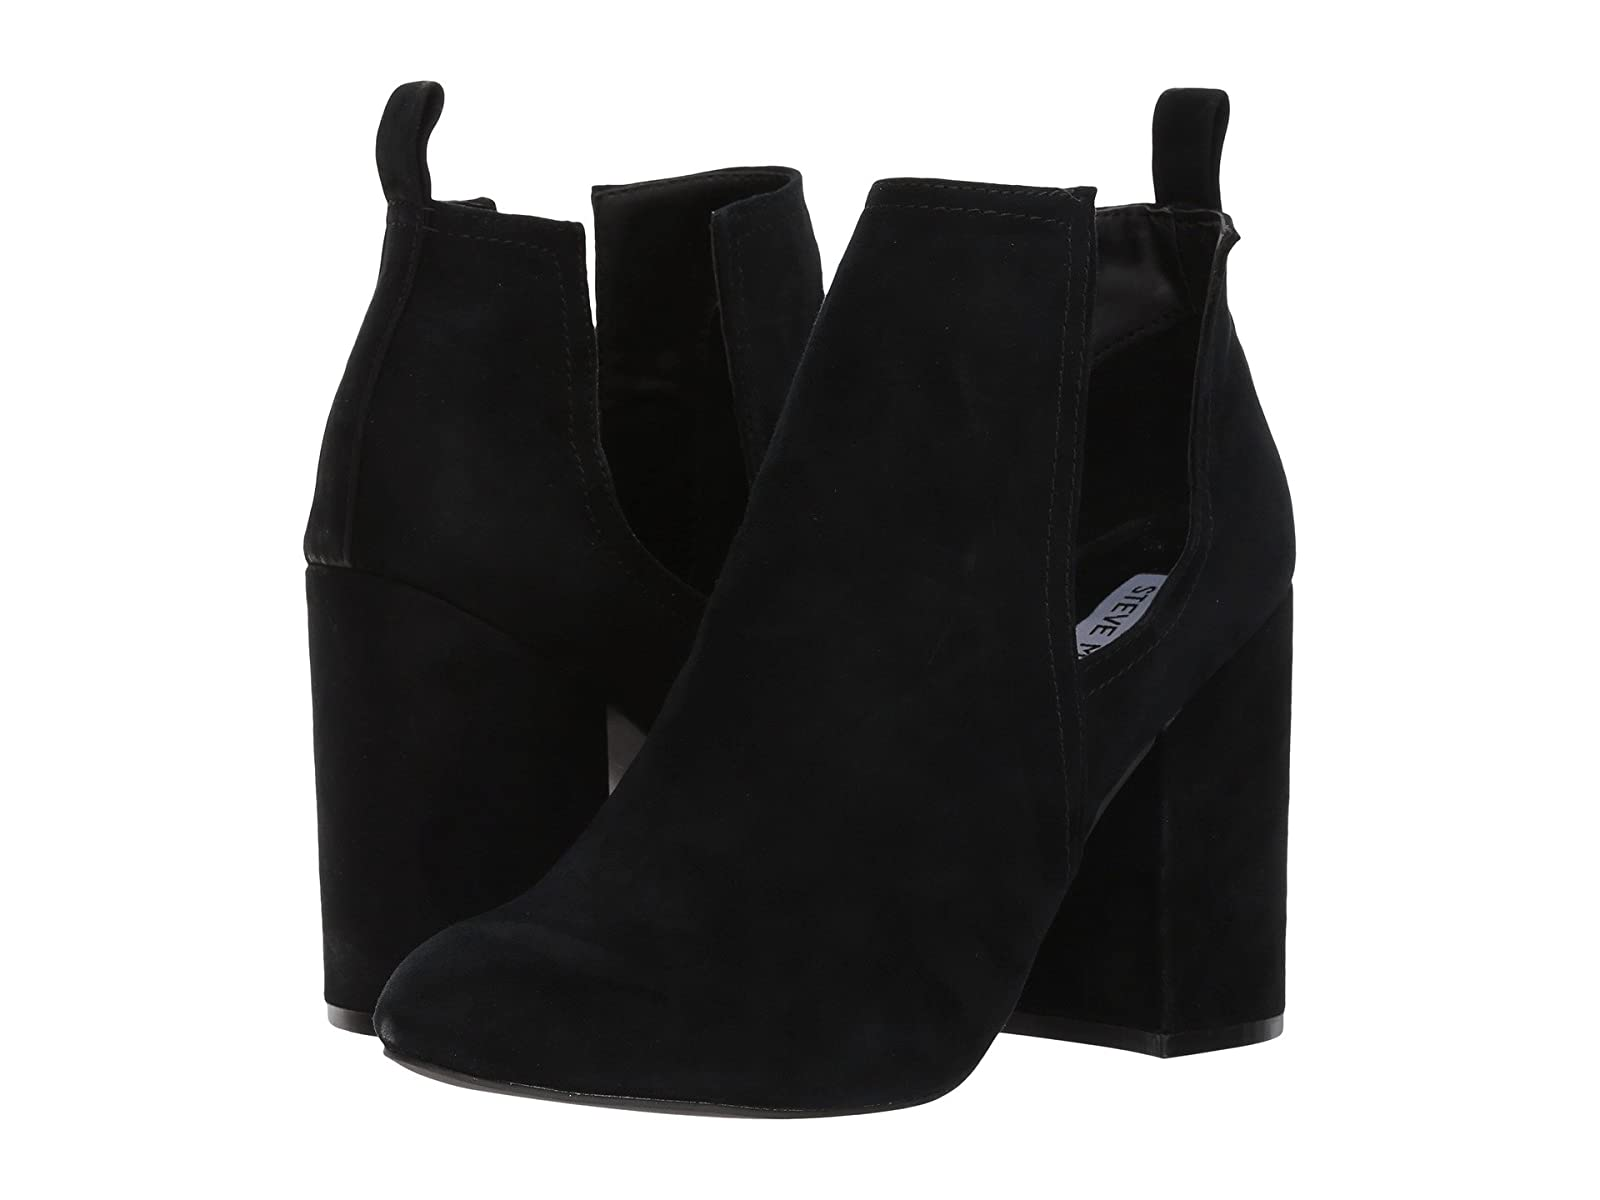 Steve Madden Naomi BootieEconomical and quality shoes